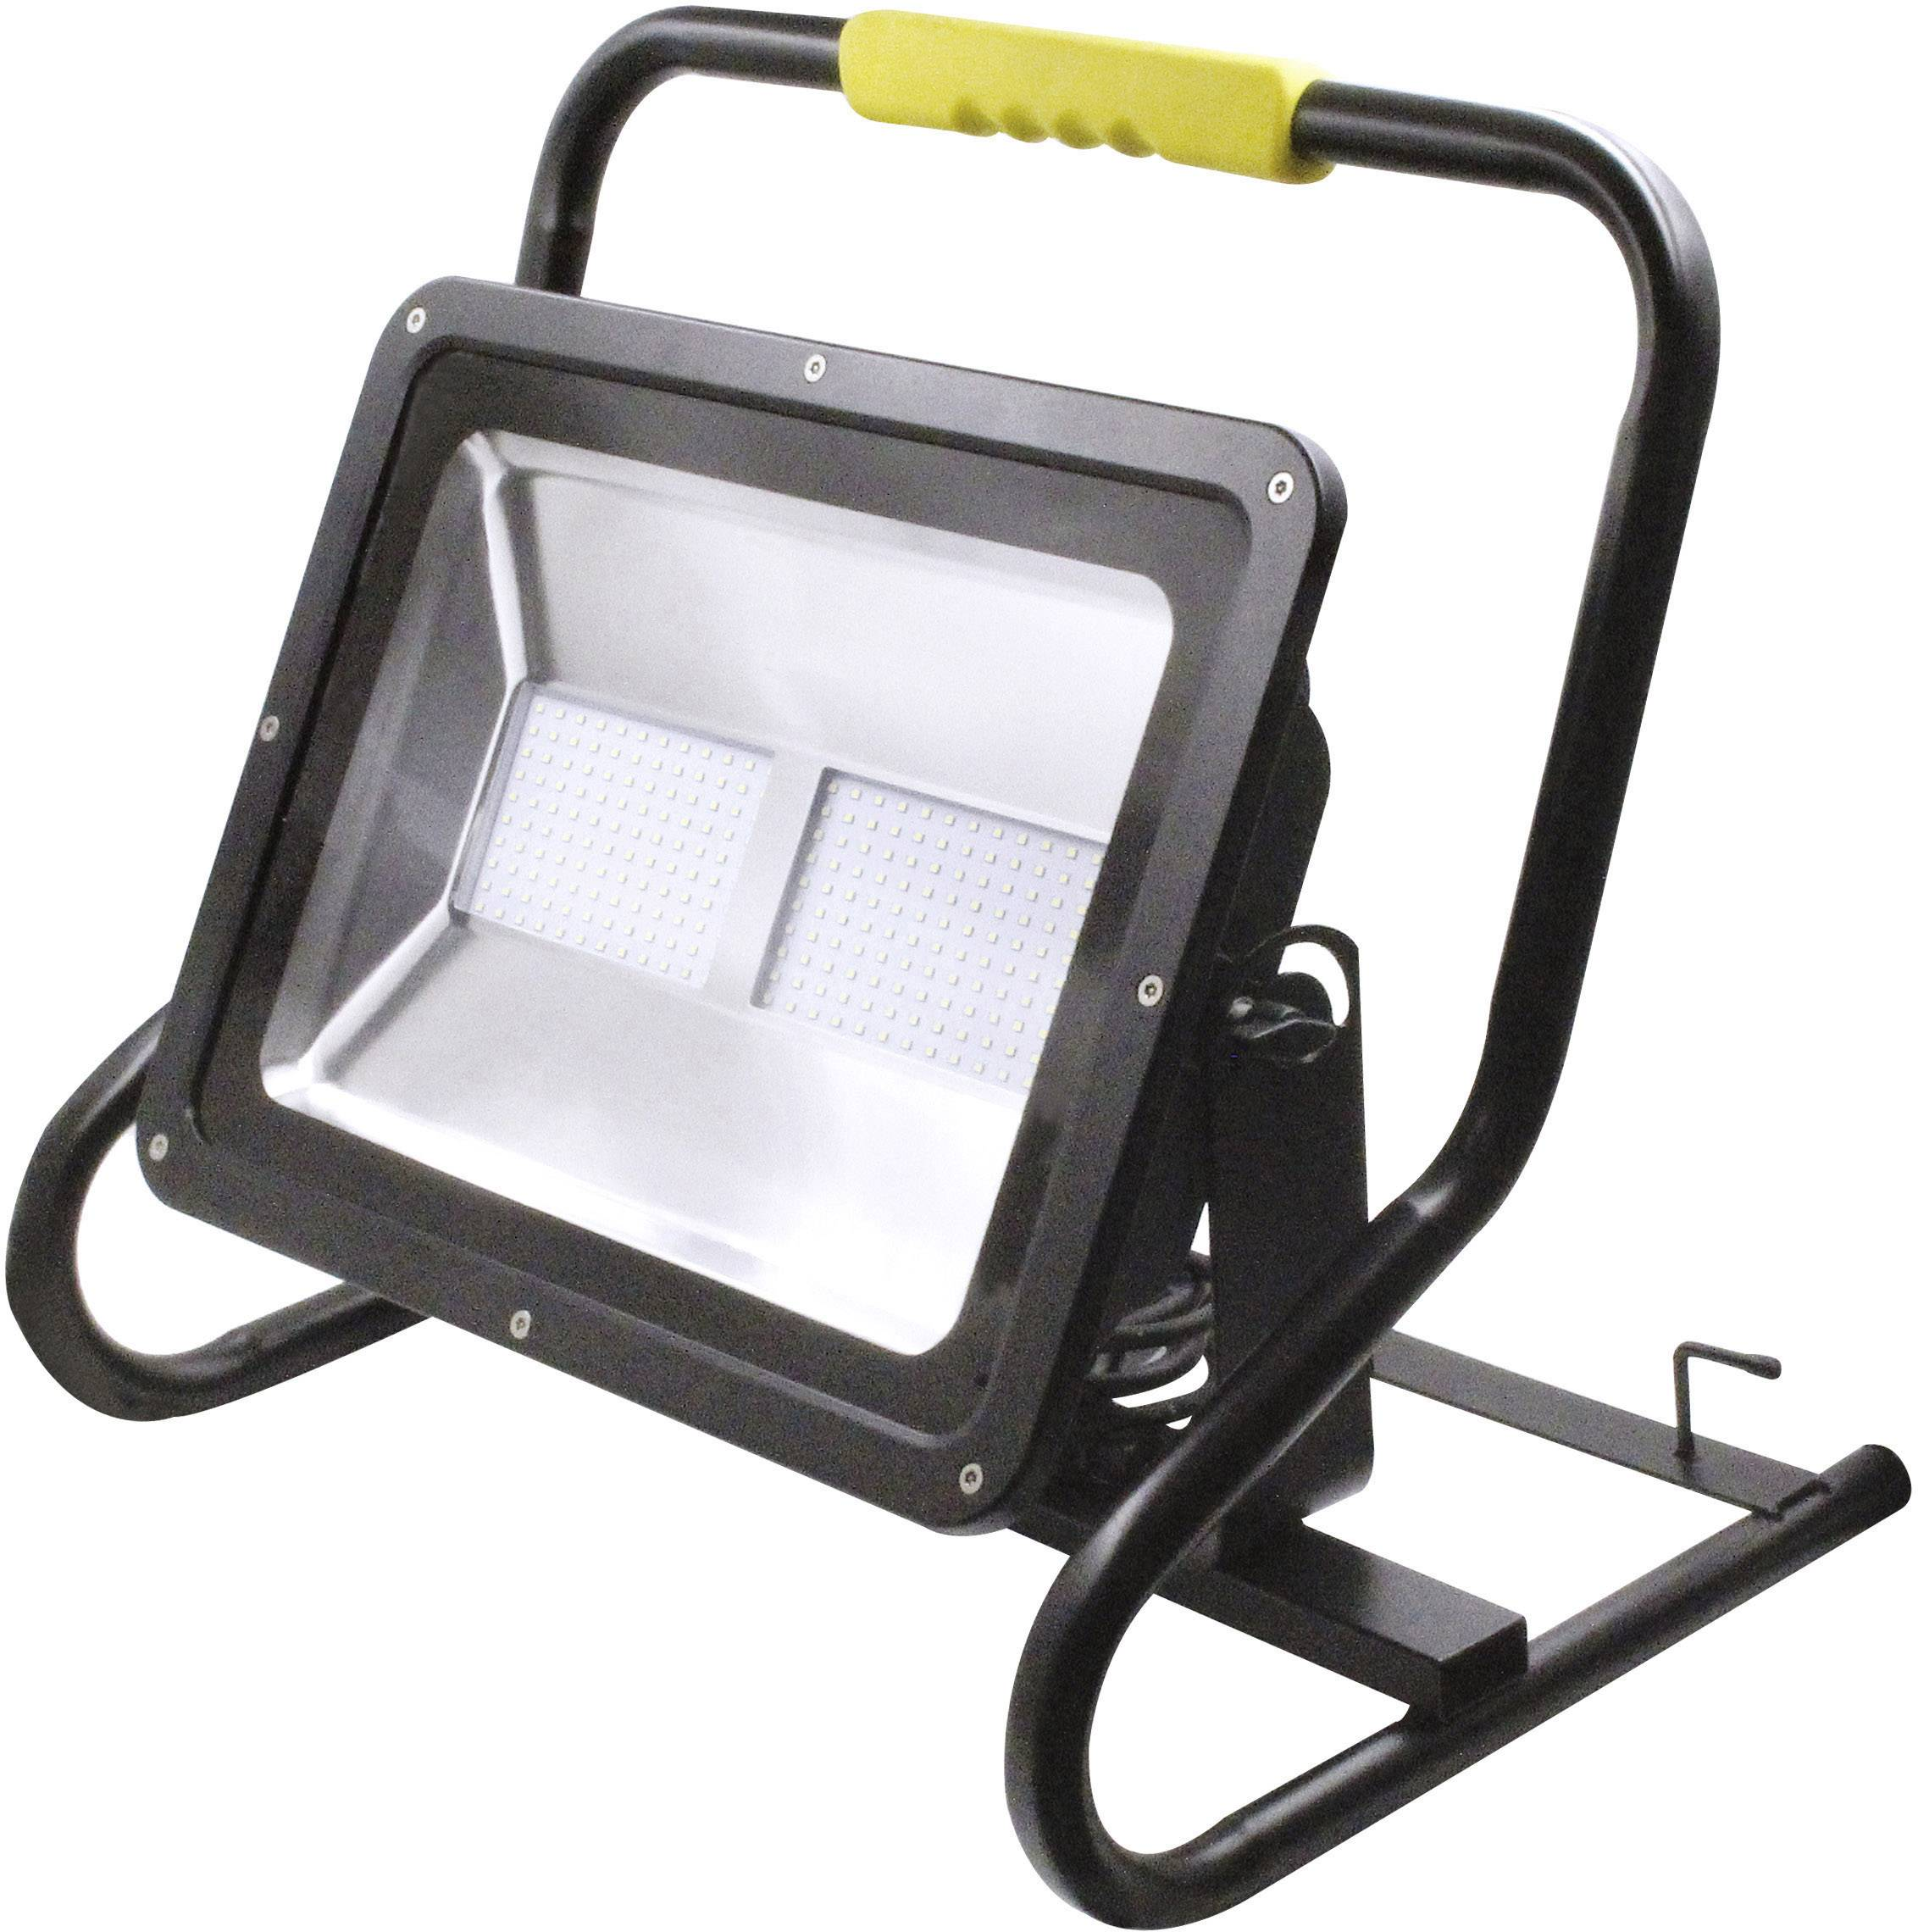 Strahler Led High Performance Leds Work Light Mains Powered Shada 300196 Led